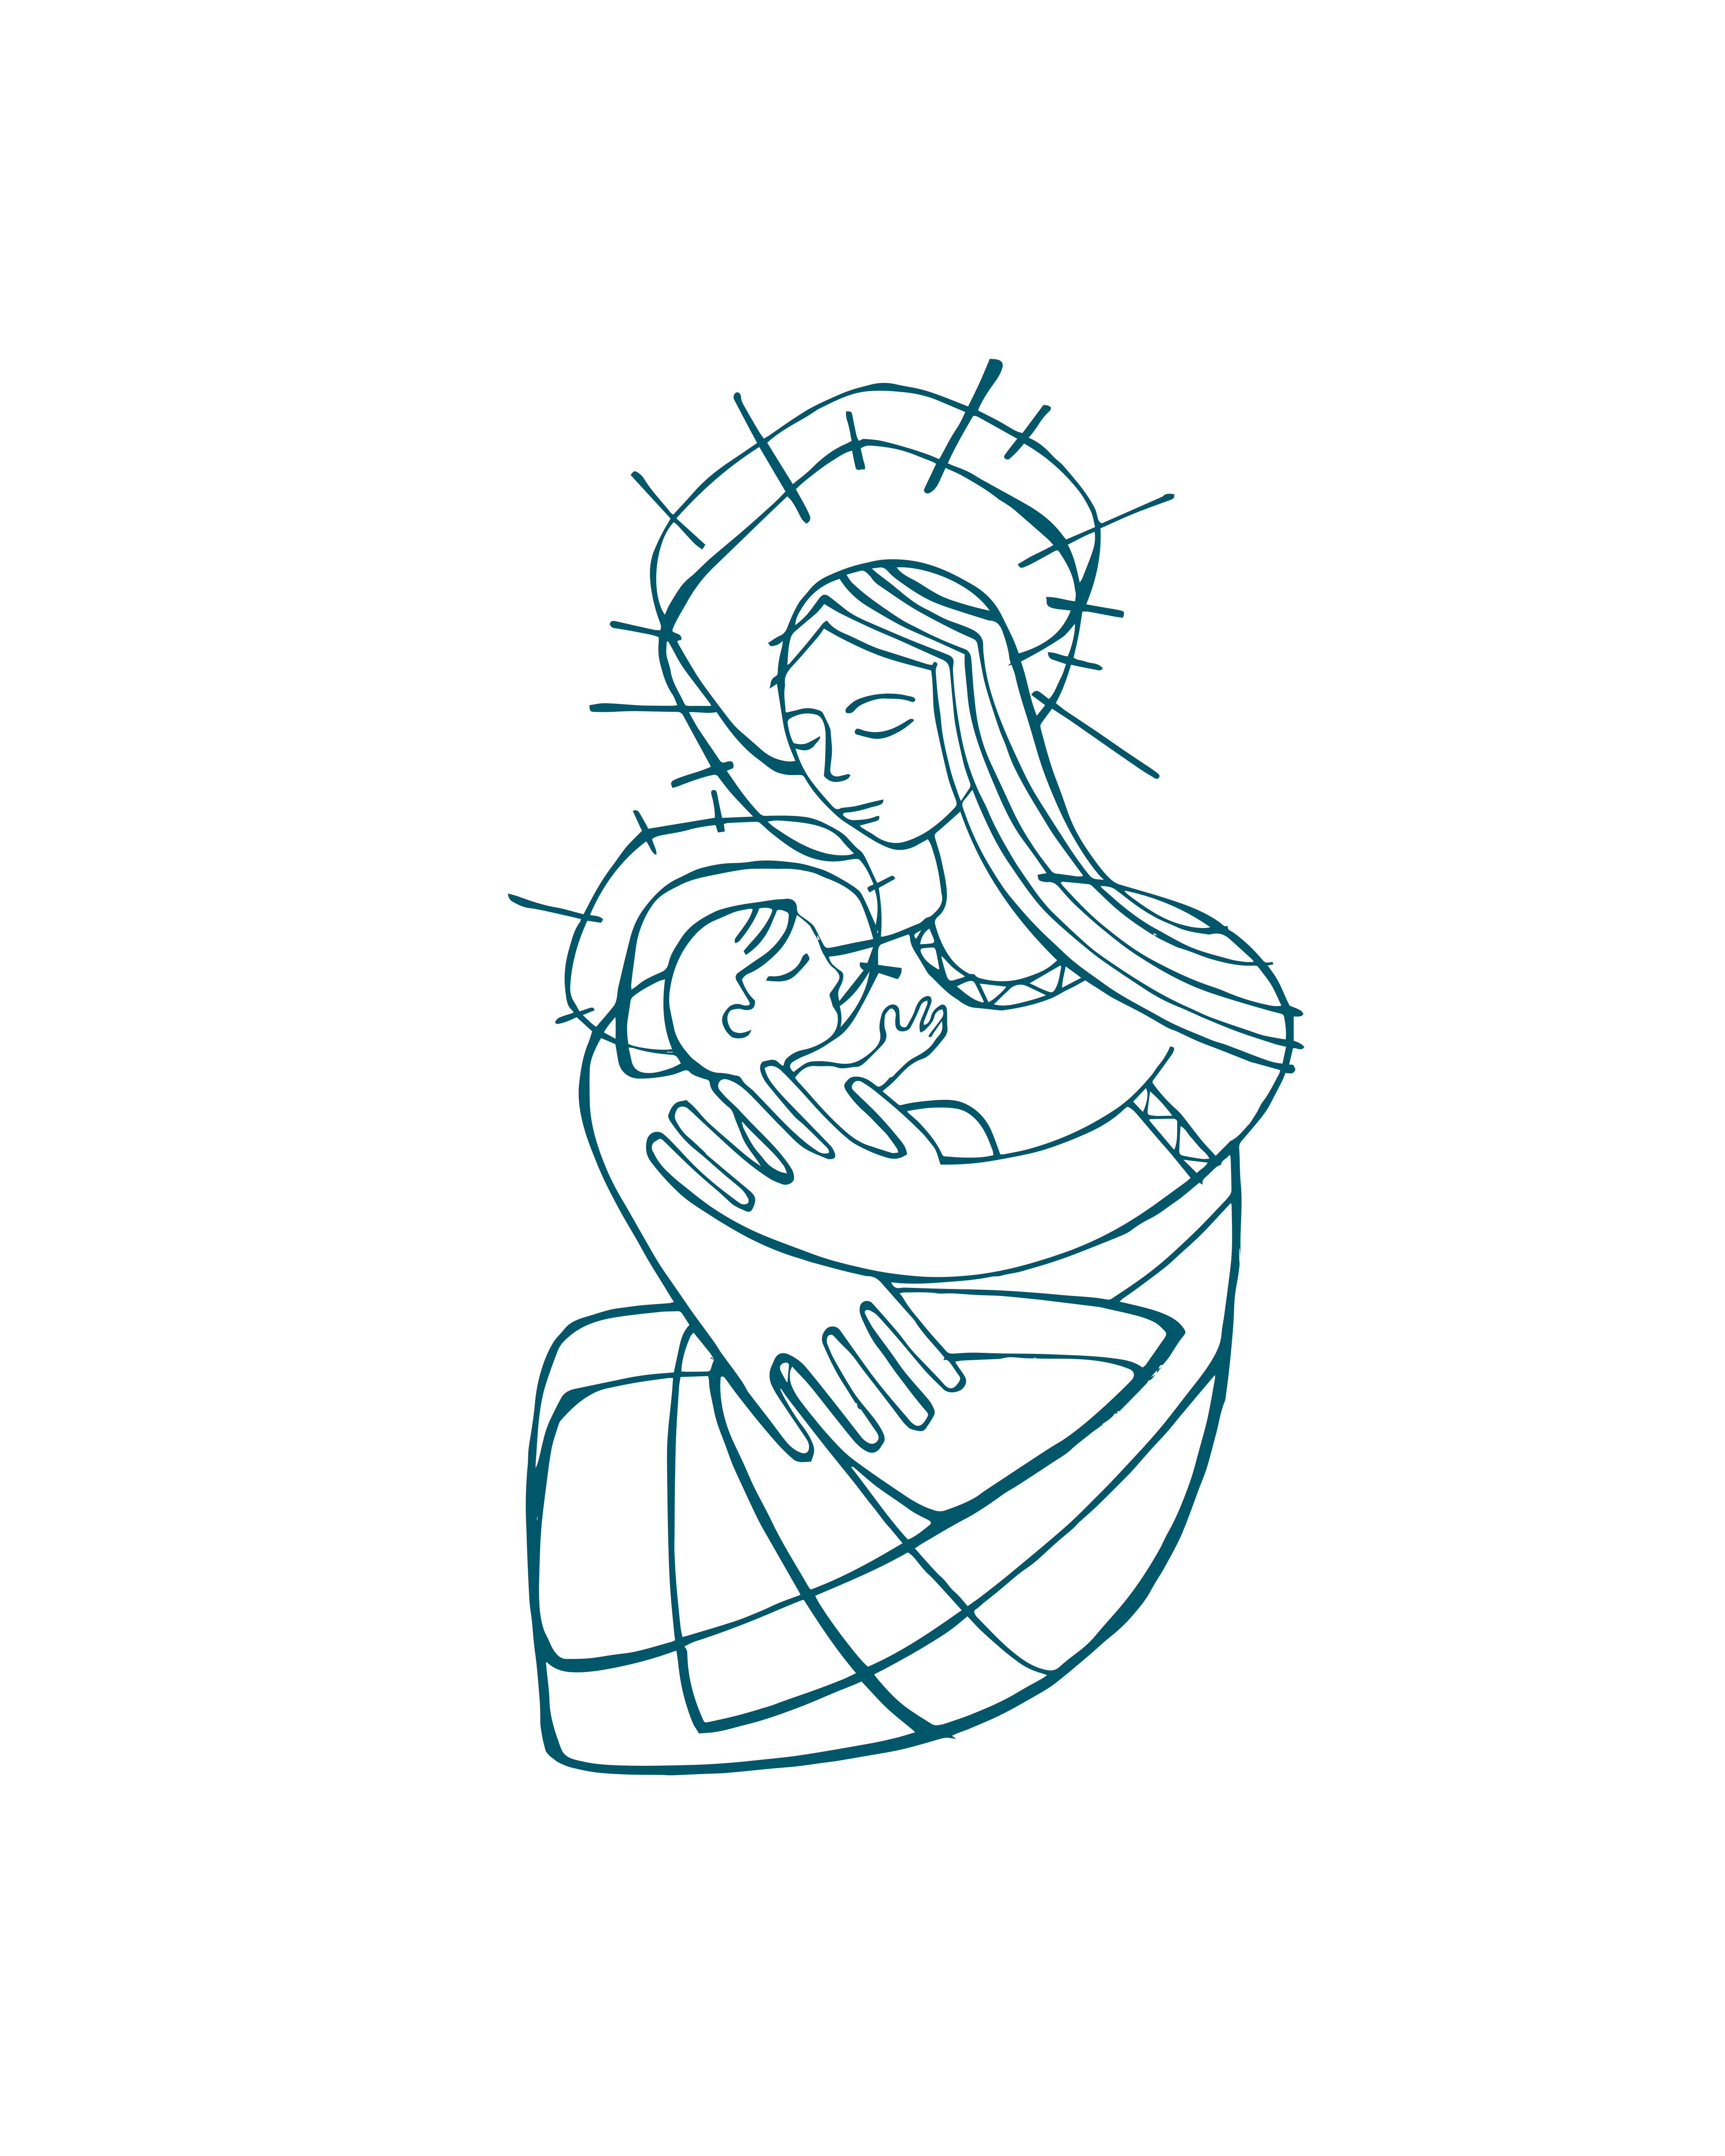 María Madre y Jesús dibujo / Mary Mother and Jesus drawing